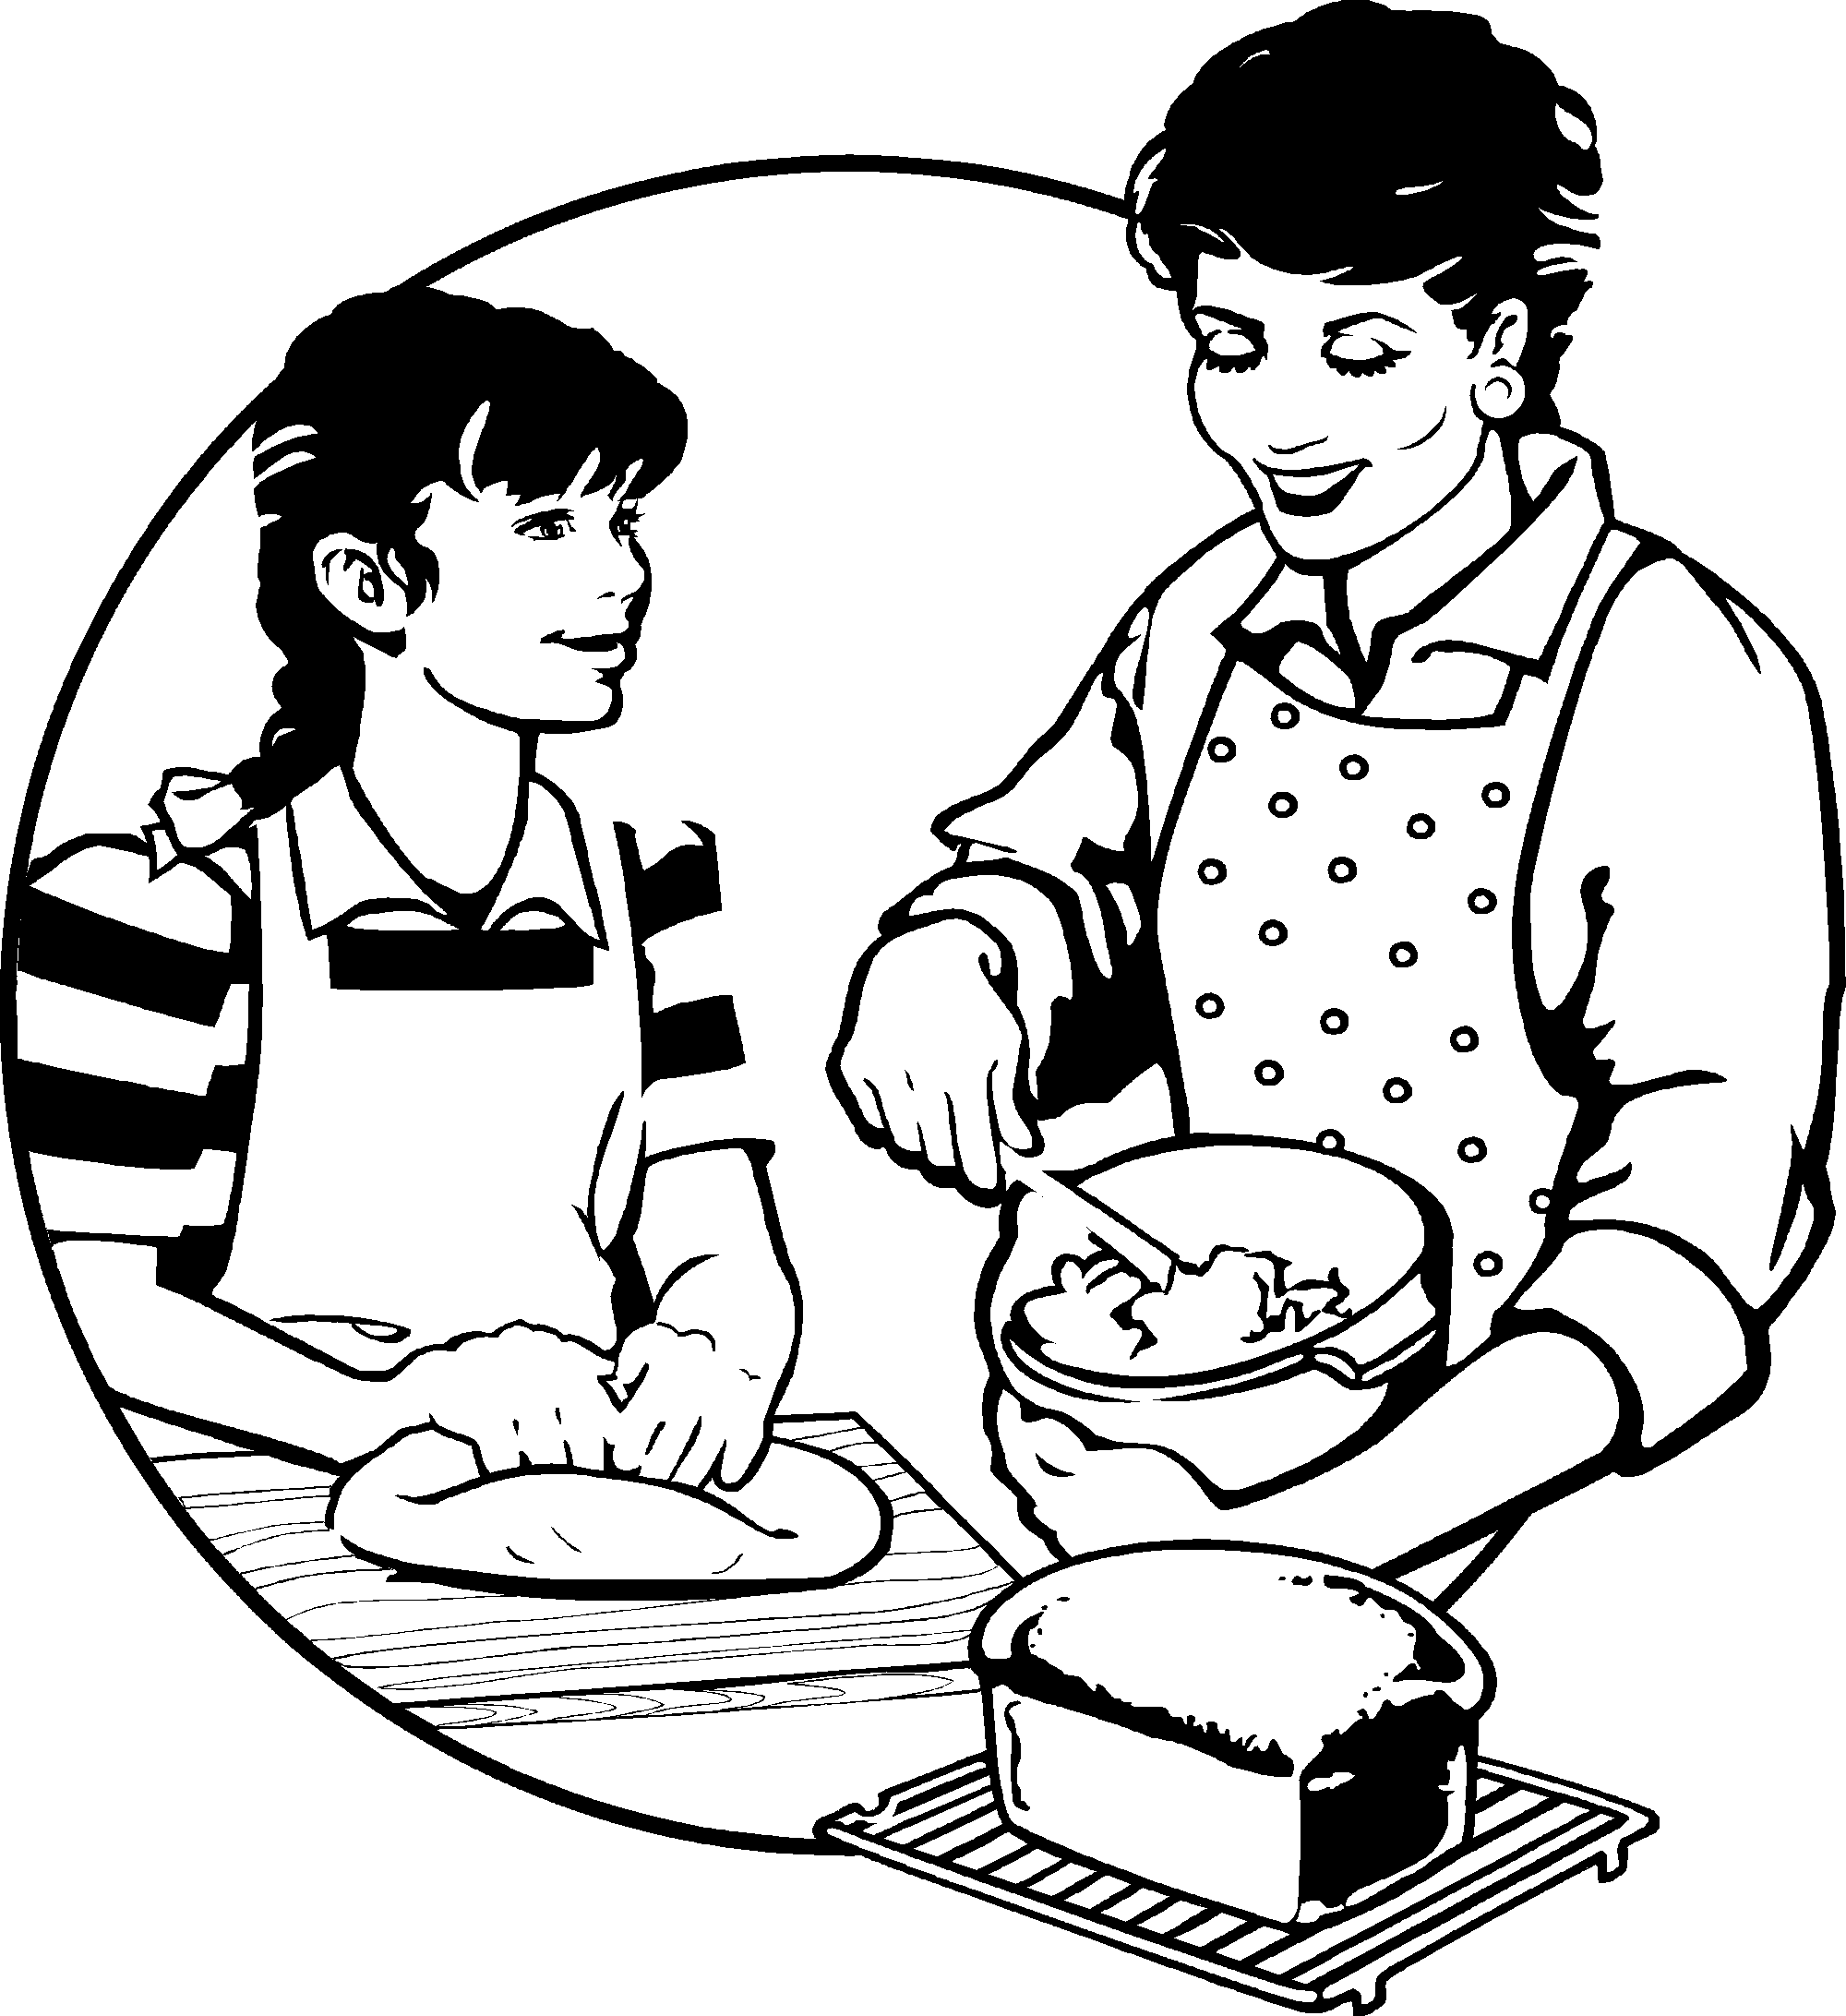 Find free clipart or pics of woman checking temperature of see if turkey cooked picture black and white download Junior Chefs - Recipes by Kids | Food and Health | PlayDate picture black and white download